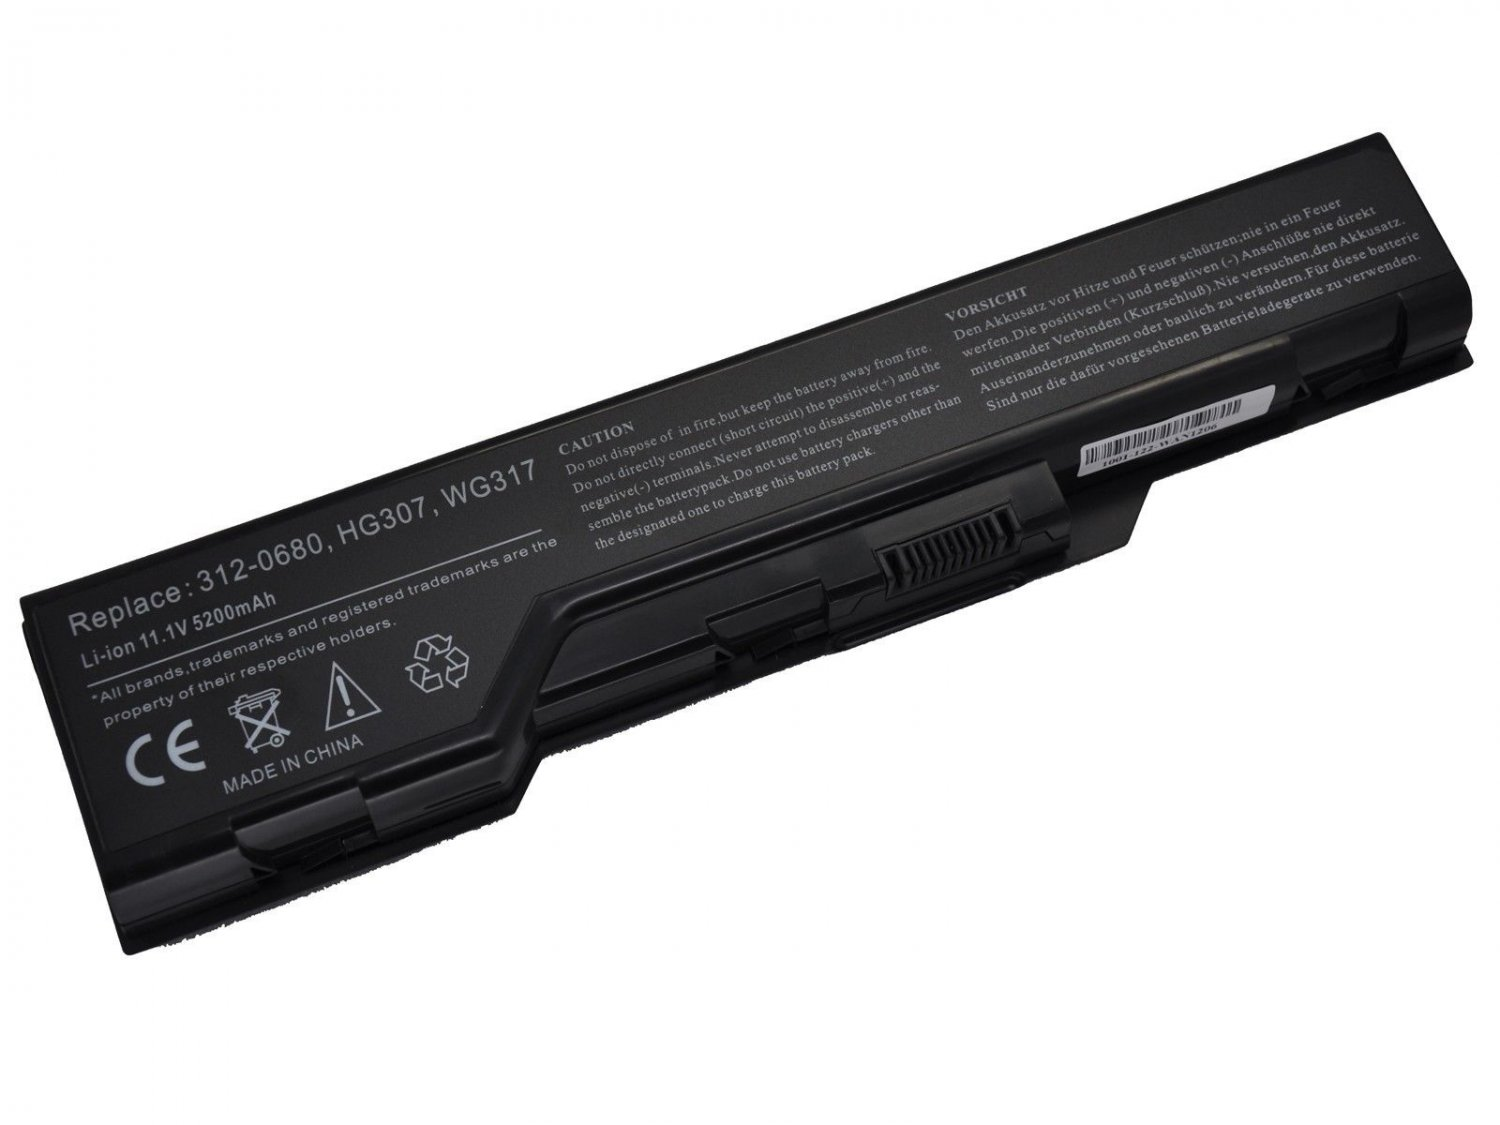 New 6 cell Laptop Battery for Dell XPS M1730 1730 312-0680 WG317 HG307 XG510